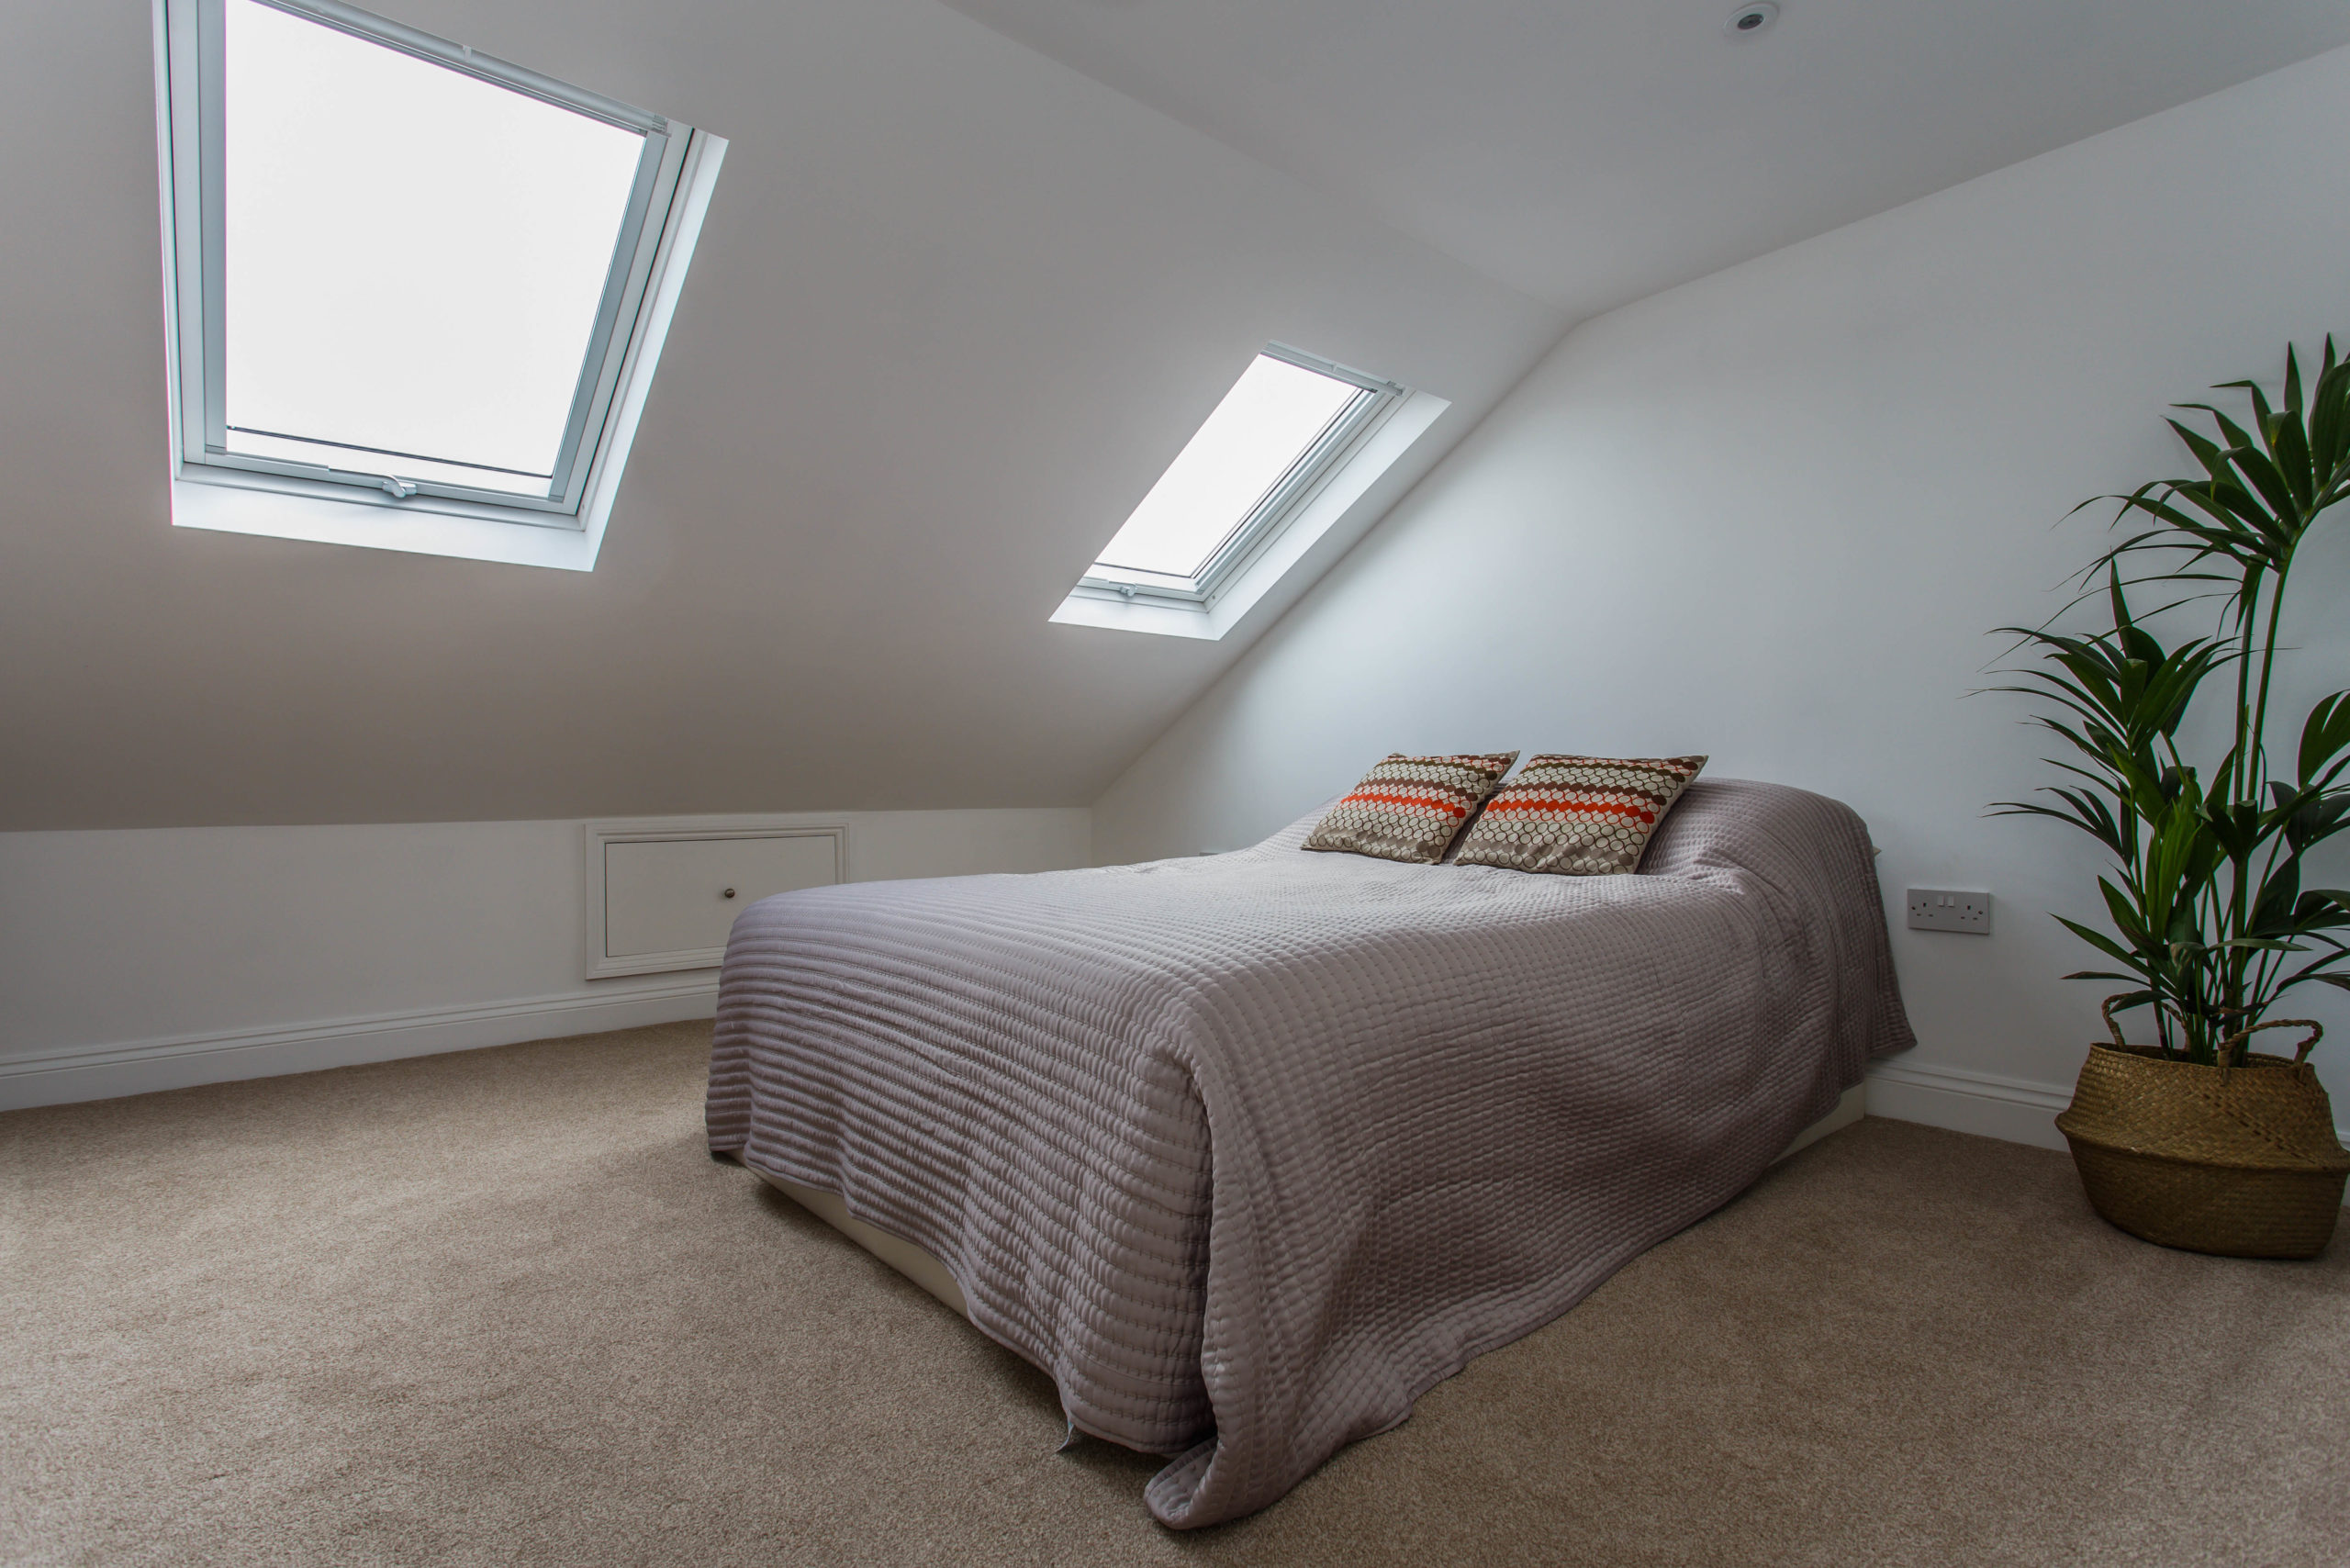 new bedroom loft conversion